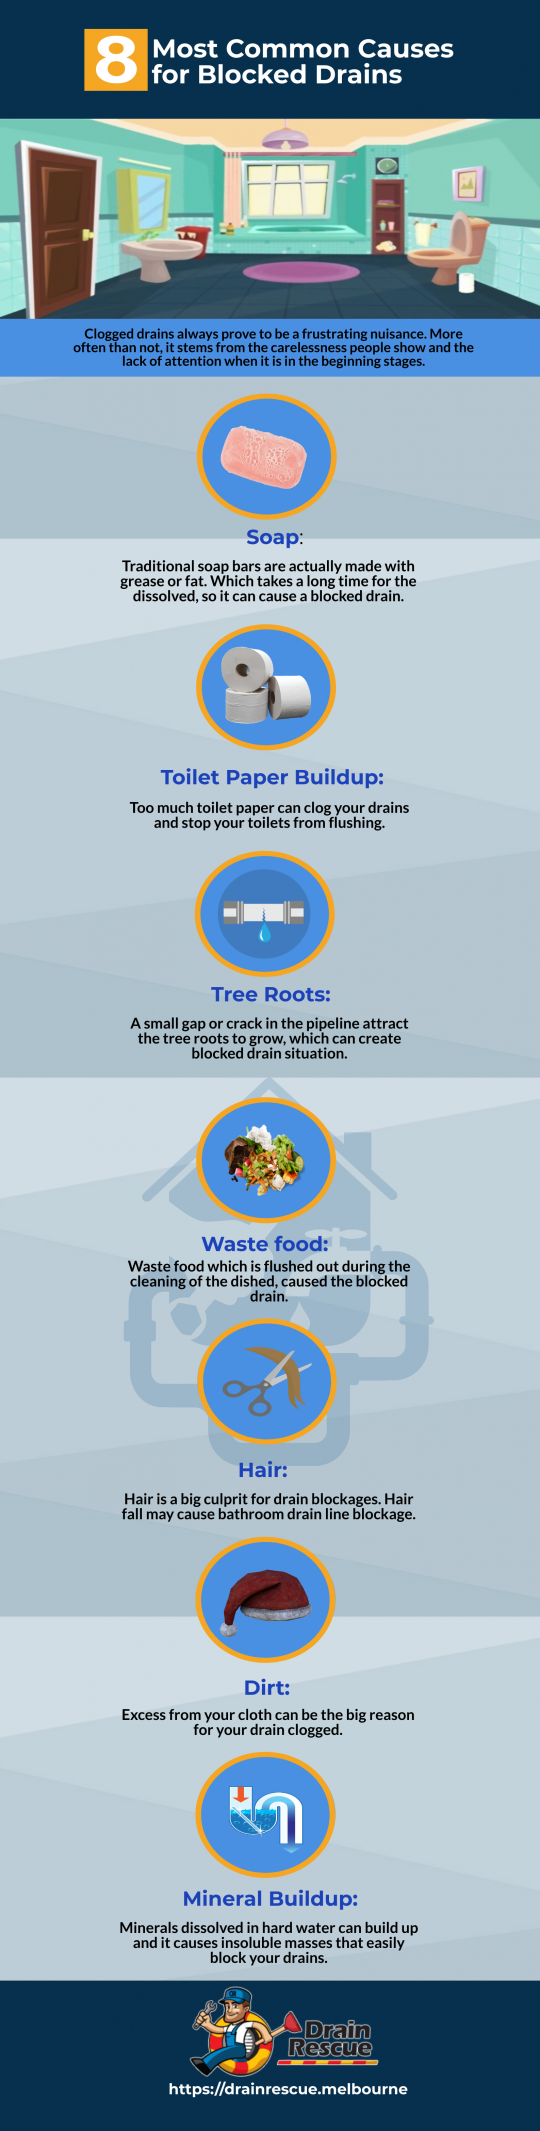 8 Most common causes for blocked drains